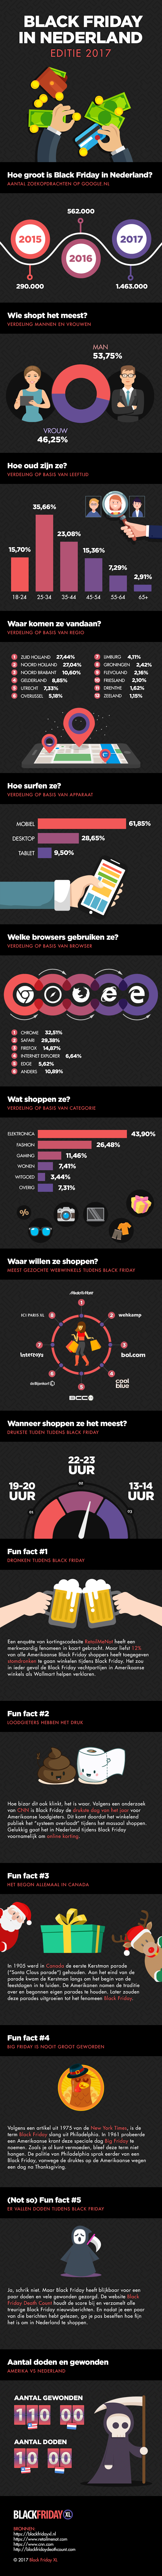 Black Friday XL infographic